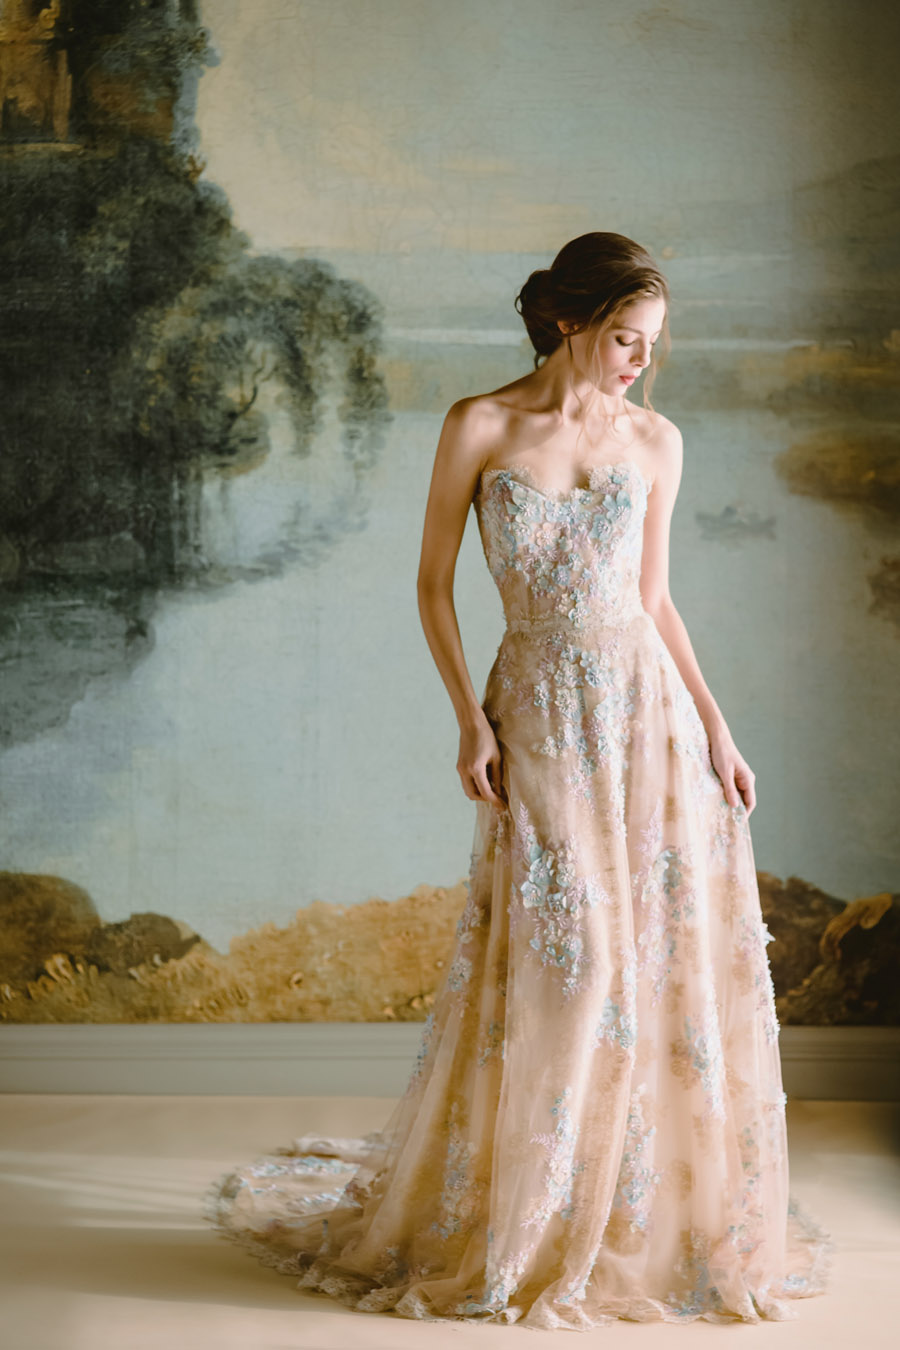 Claire Pettibone 2020 wedding dress ideas (3)